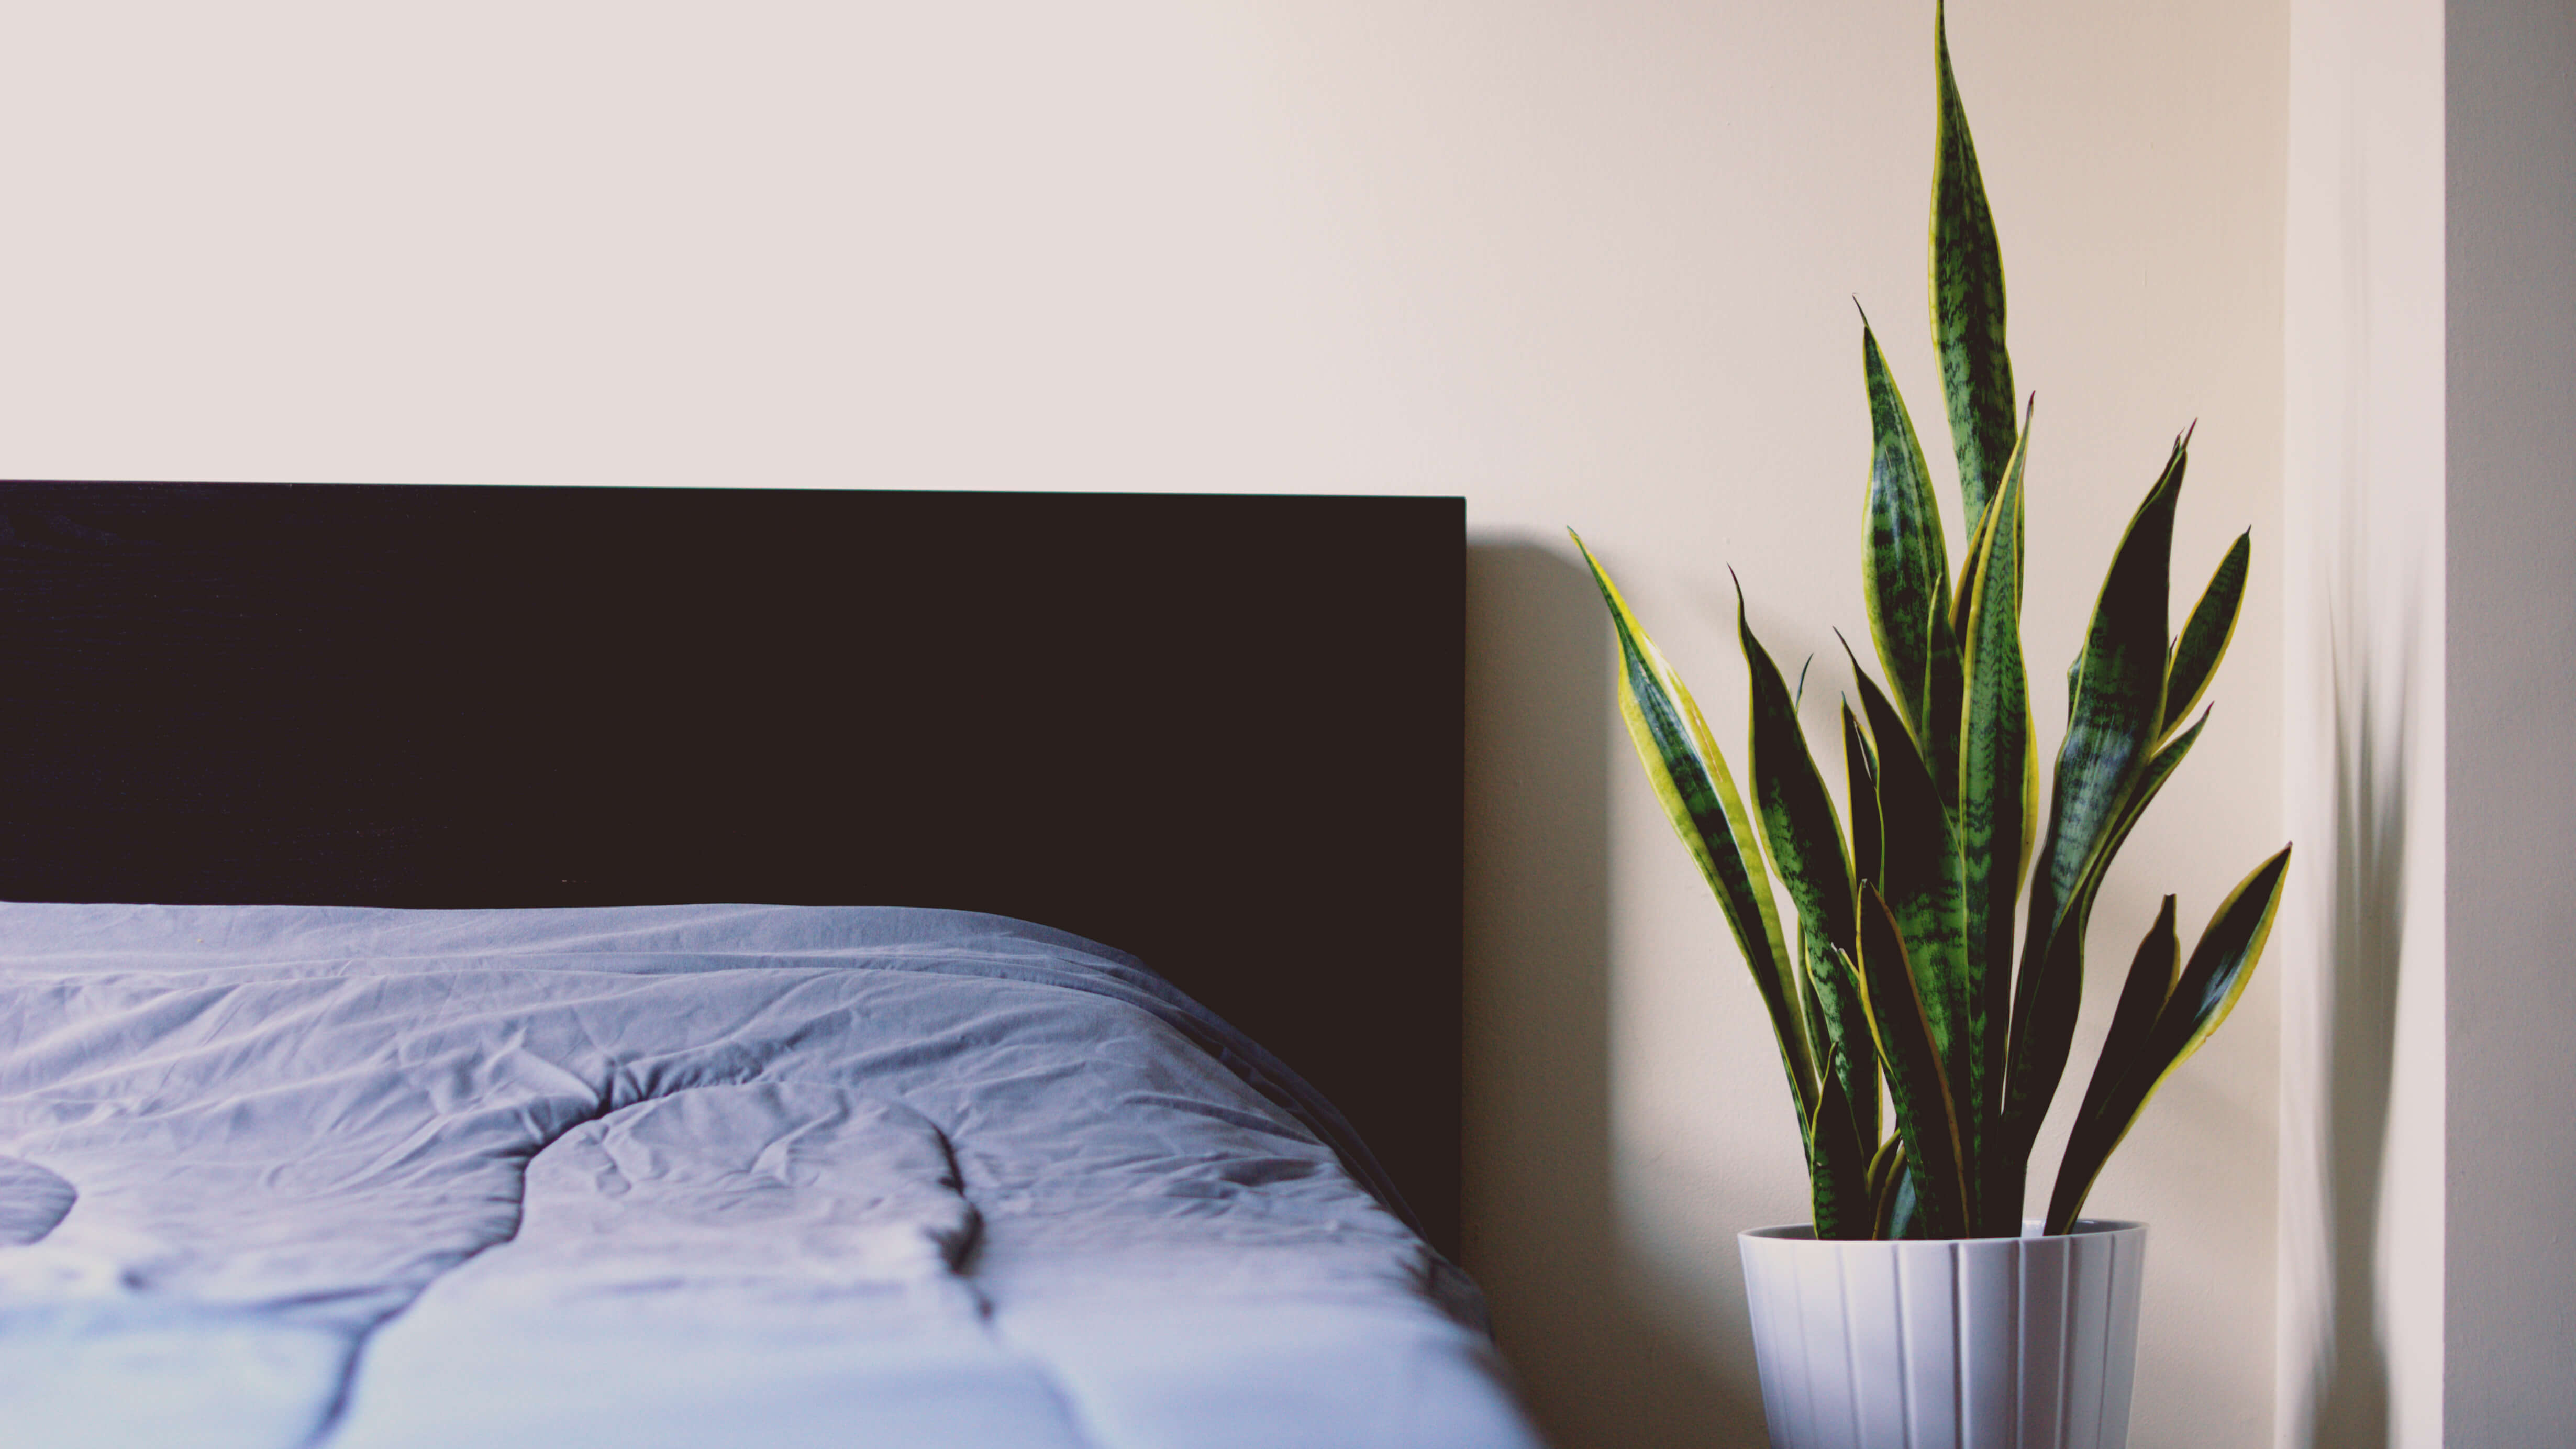 Bed and plant on side table